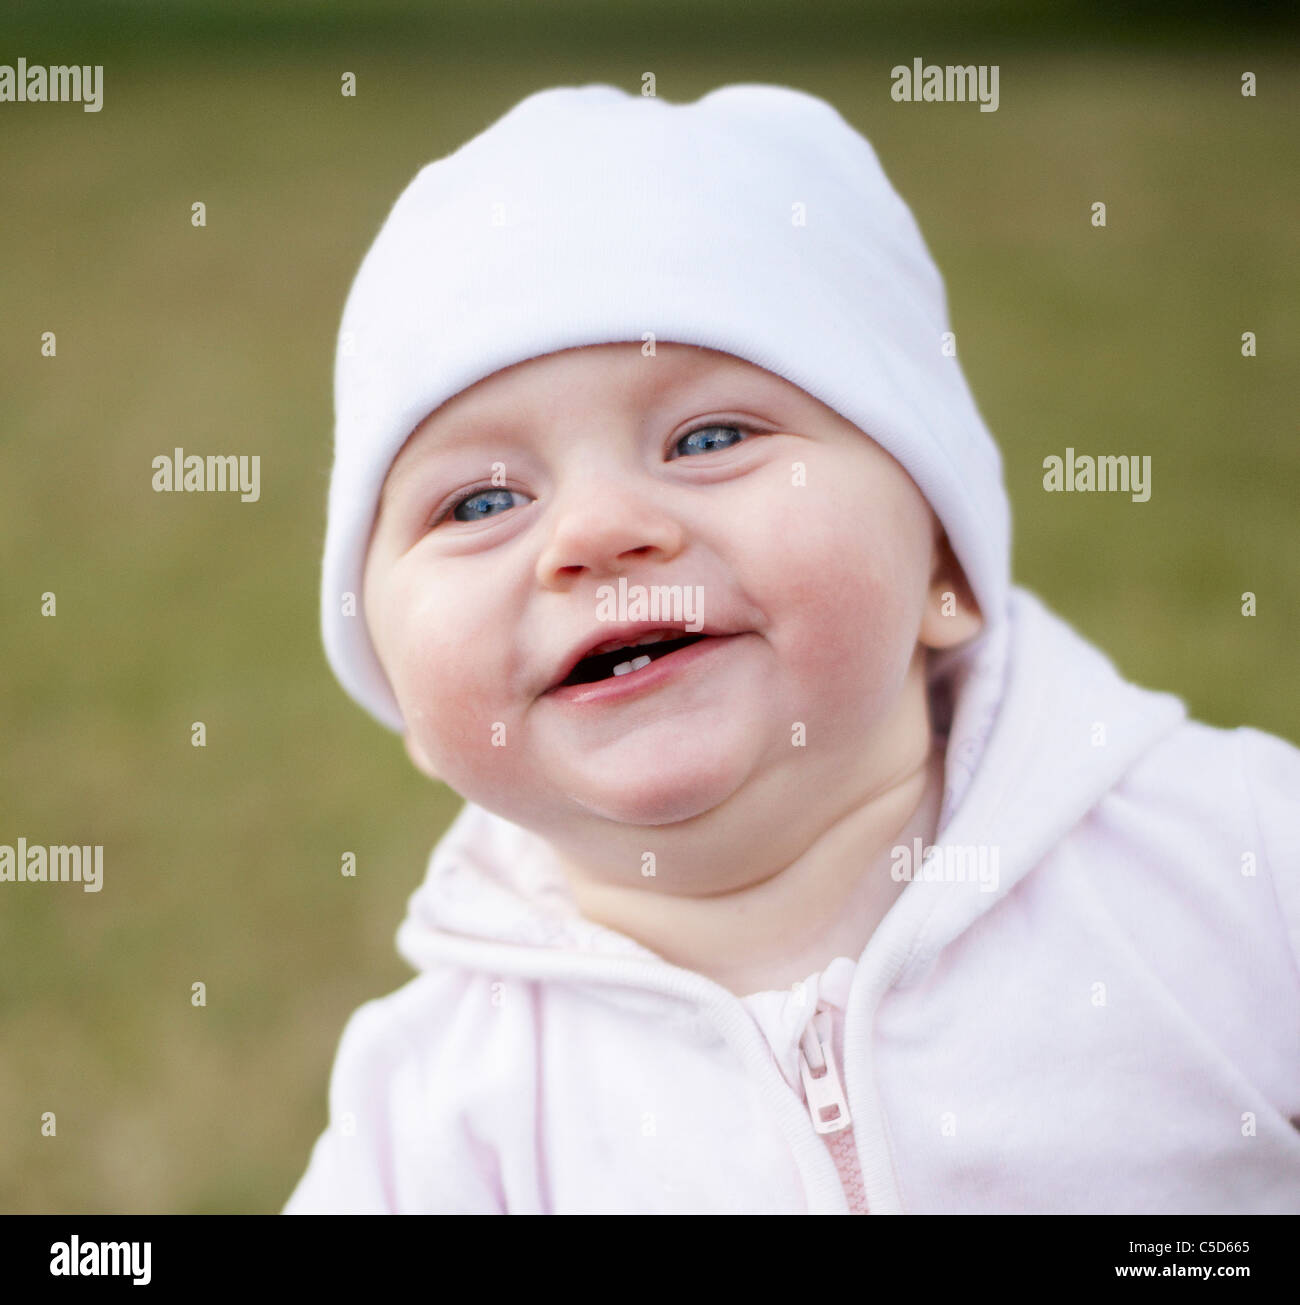 f08d94c79f2 Close-up of a cute baby with white beanie against blurred background ...